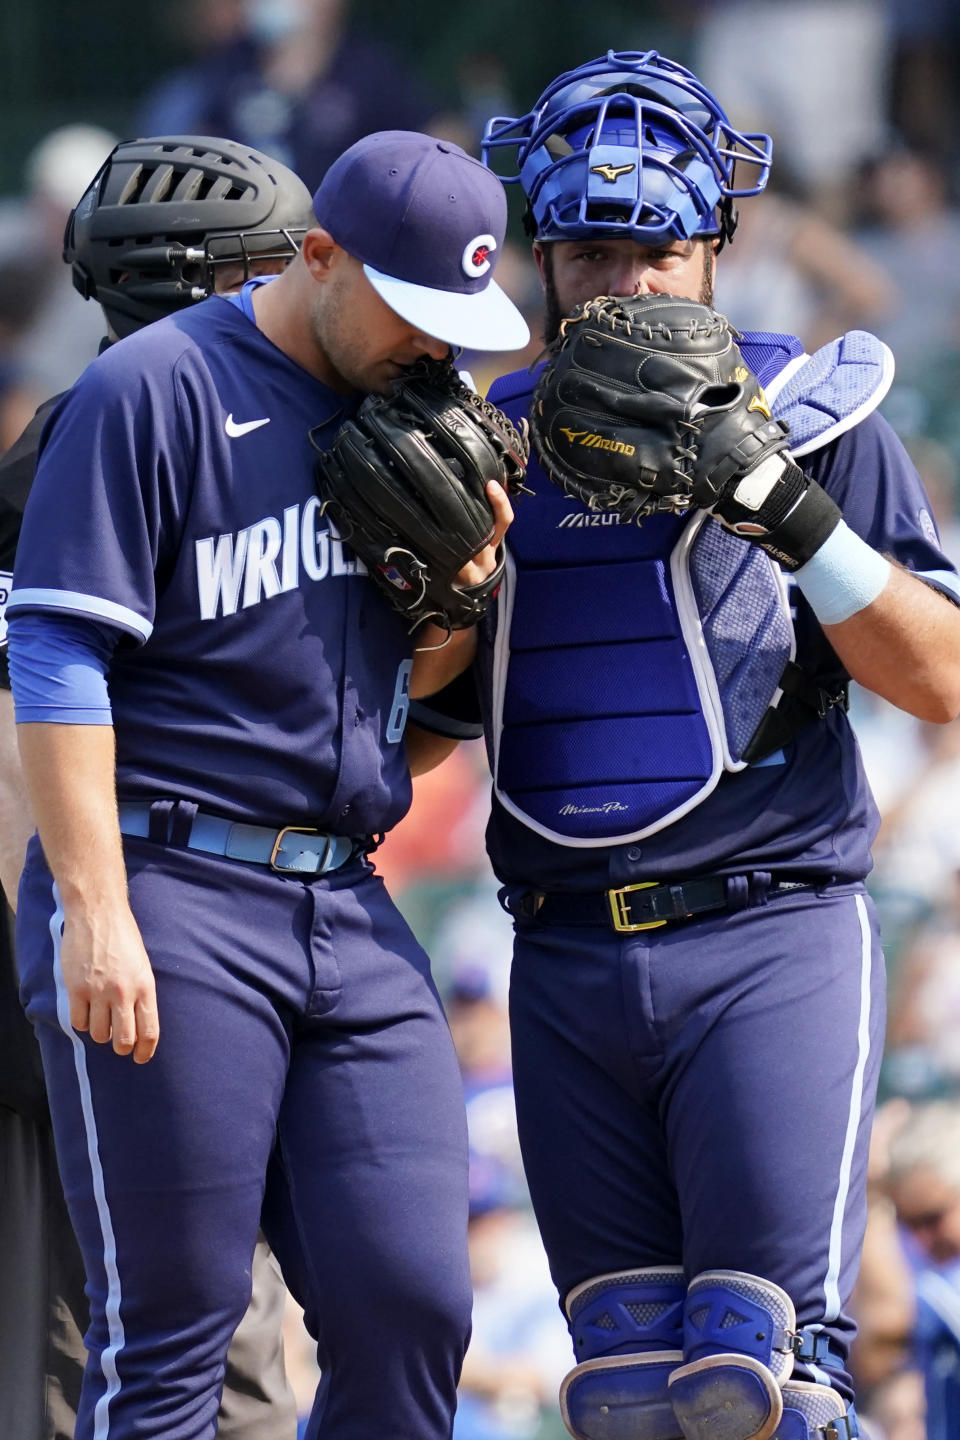 Chicago Cubs catcher Austin Romine, right, talks with relief pitcher Ryan Meisinger in the eighth inning of a baseball game against the Kansas City Royals, Friday, Aug. 20, 2021, in Chicago. (AP Photo/Nam Y. Huh)